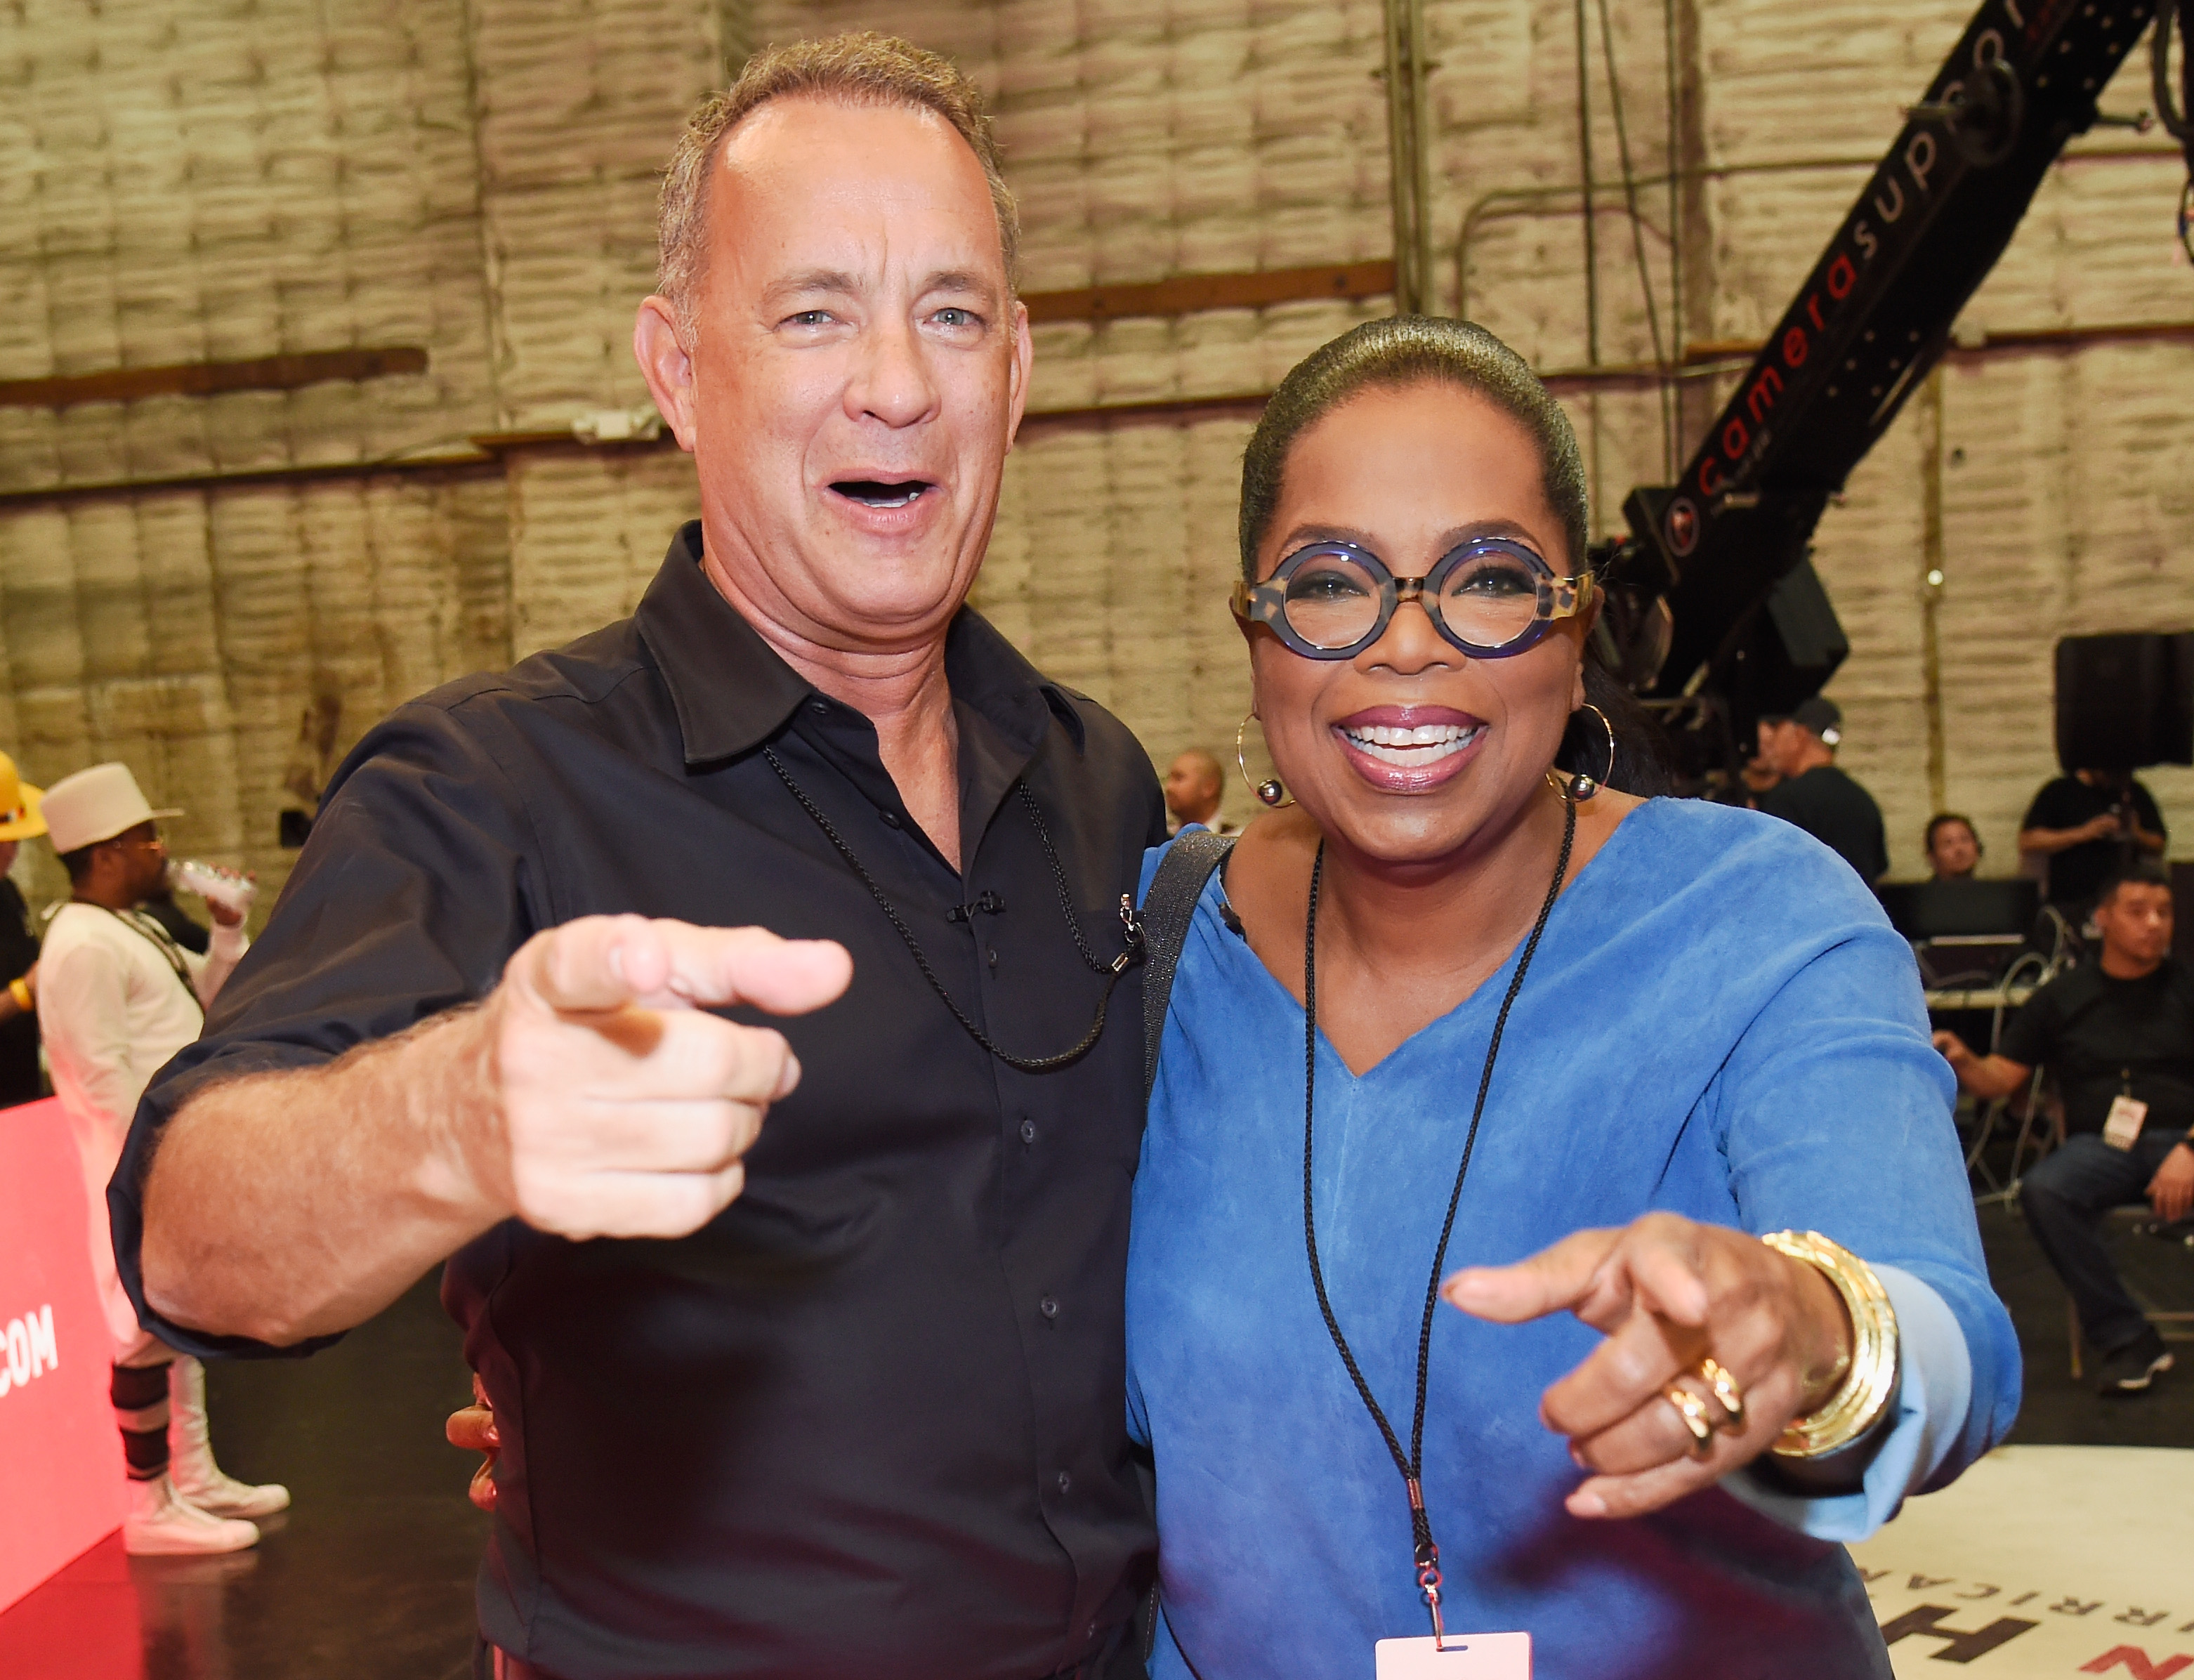 <div class='meta'><div class='origin-logo' data-origin='none'></div><span class='caption-text' data-credit='Kevin Mazur/Hand in Hand/Getty Images'>Tom Hanks and Oprah Winfrey attend Hand in Hand: A Benefit for Hurricane Relief at Universal Studios AMC on September 12, 2017 in Universal City, California.</span></div>